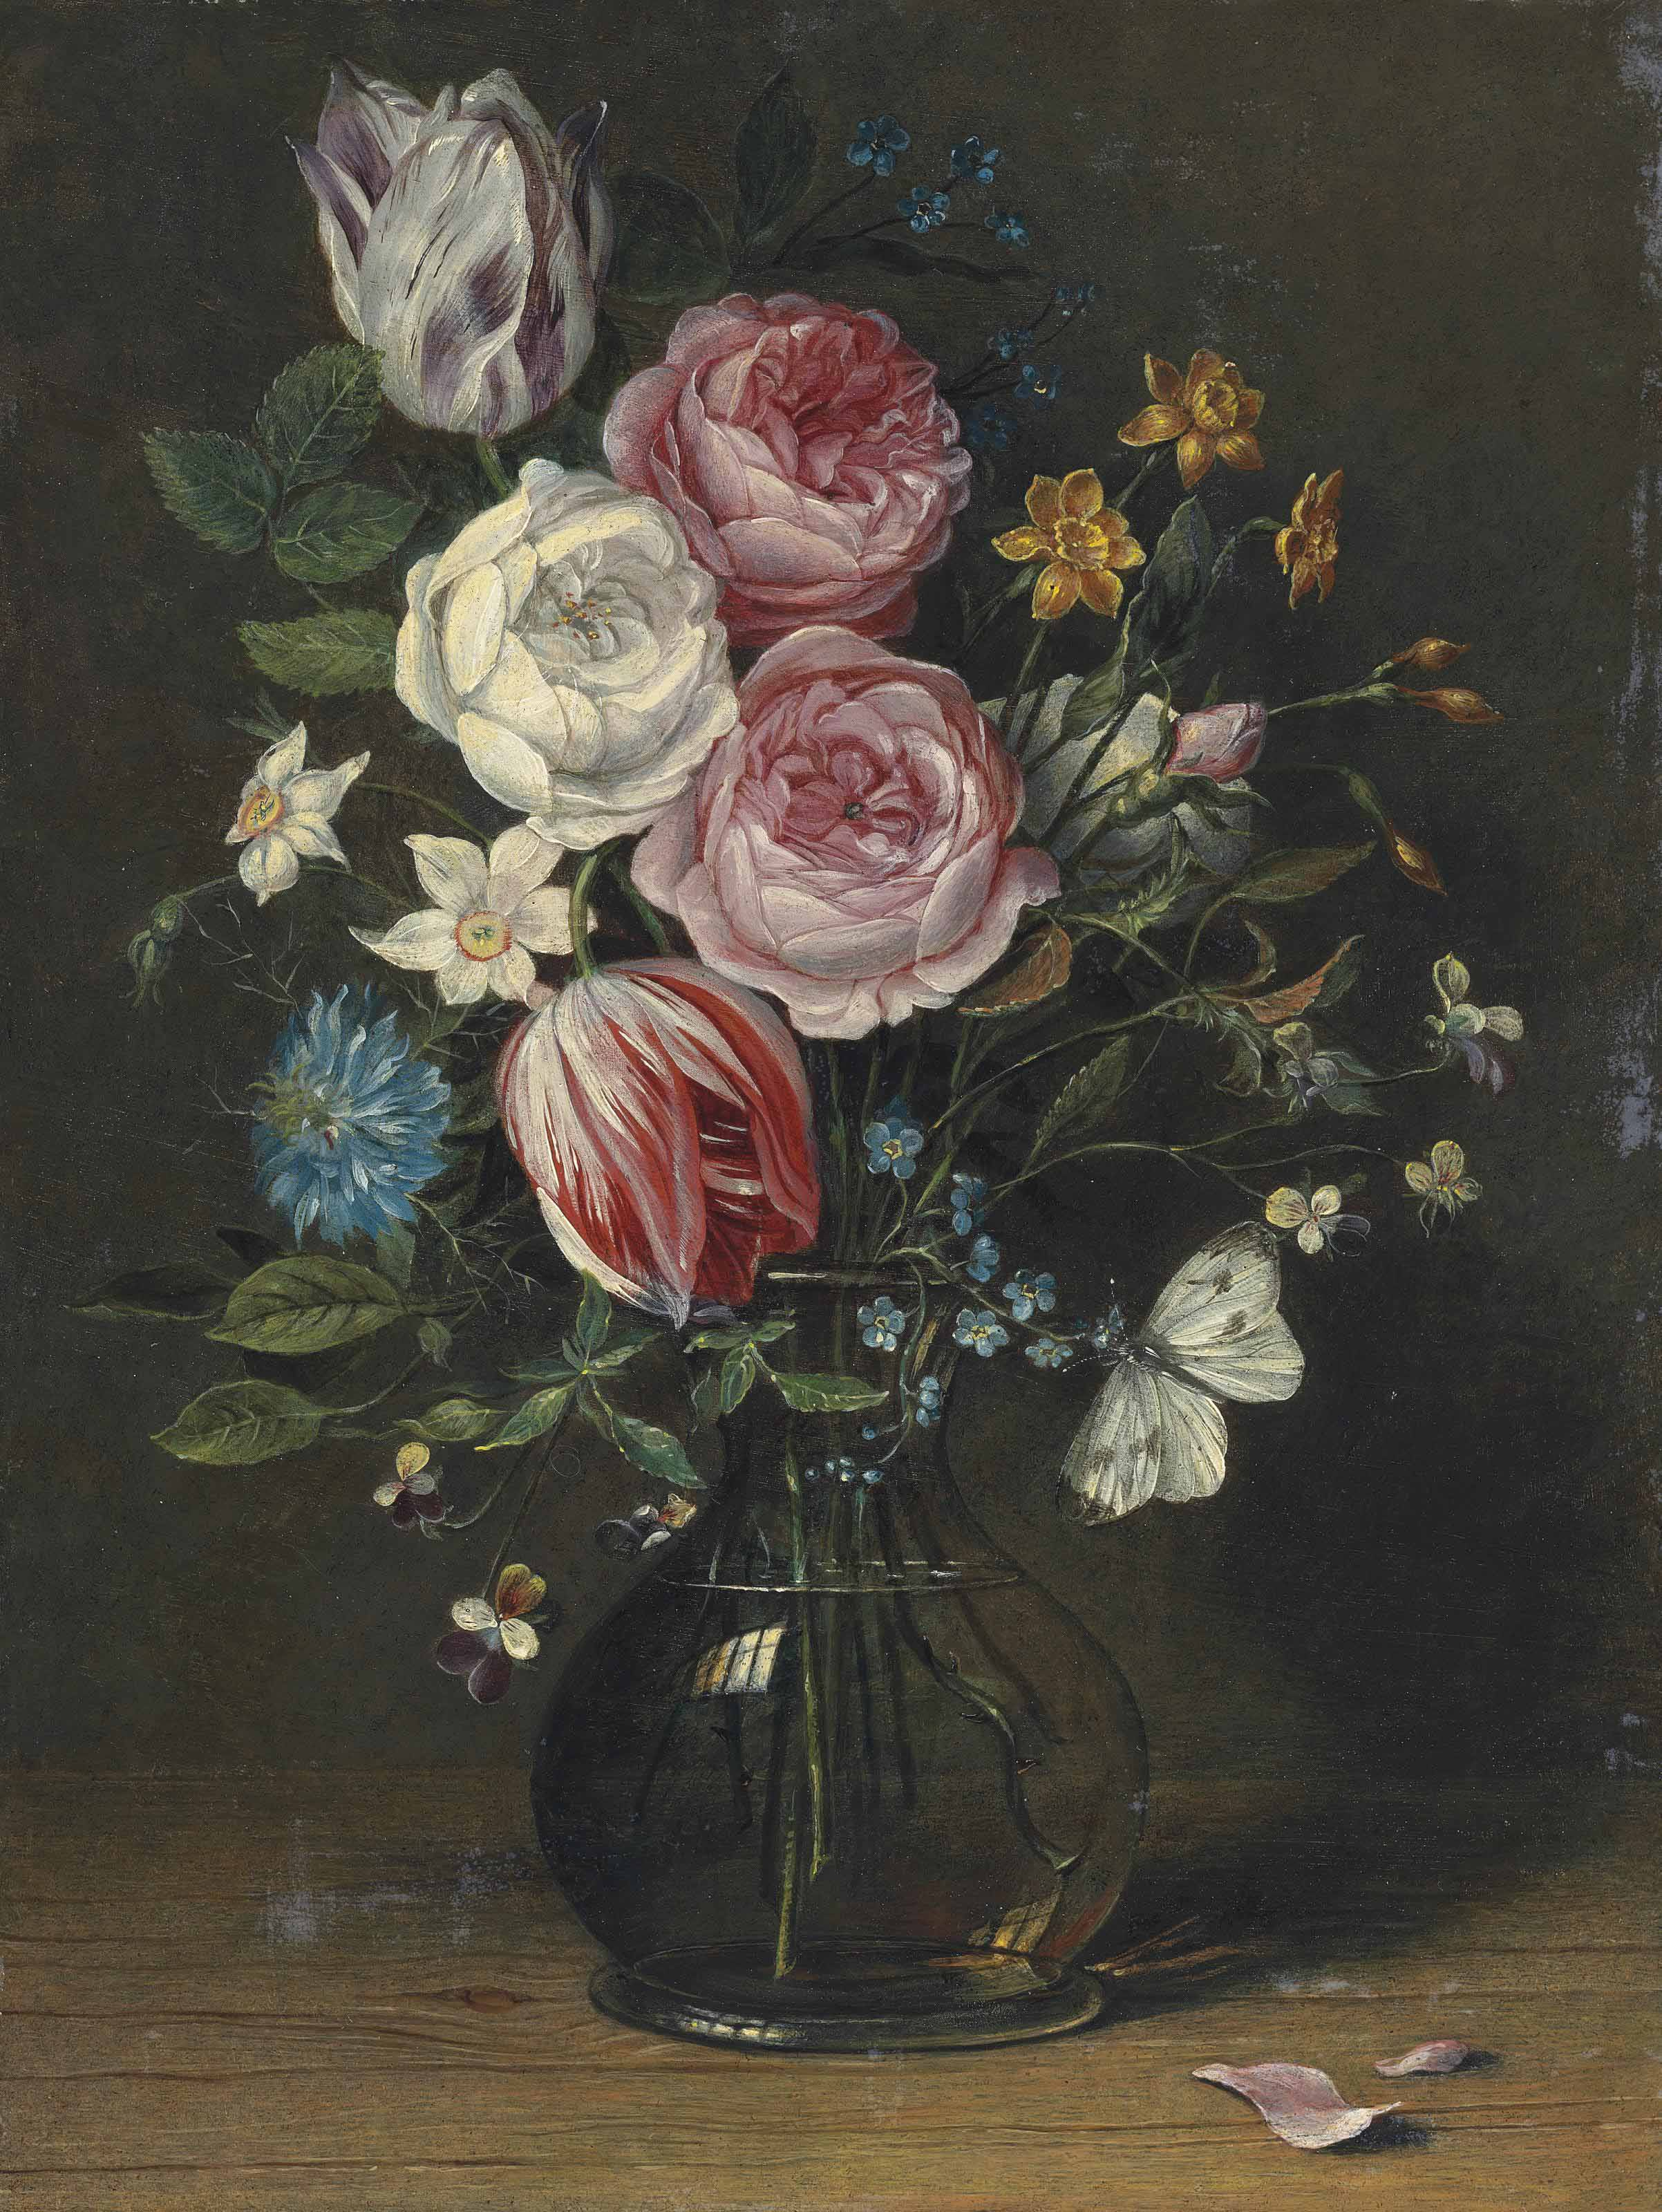 Roses, tulips, Poet's daffodils and other flowers in a glass vase, with a butterfly